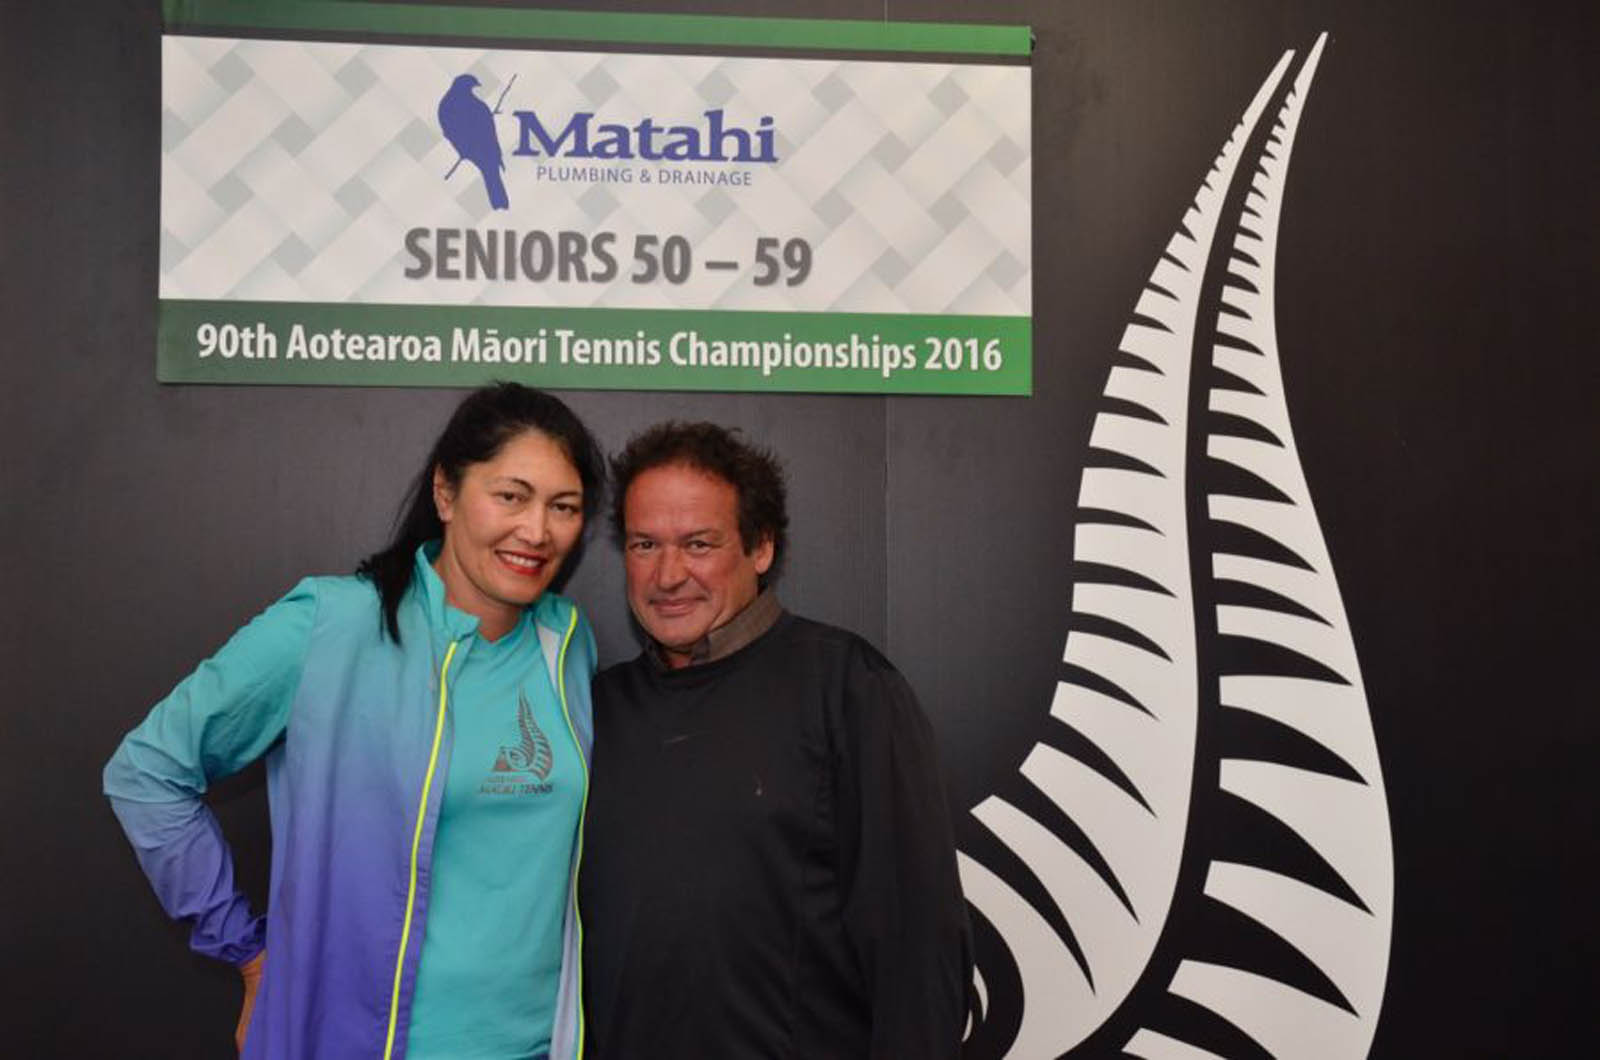 50-59 Mixed Doubles Winners - Tia Van Selm Ormsby and Wayne Thomson